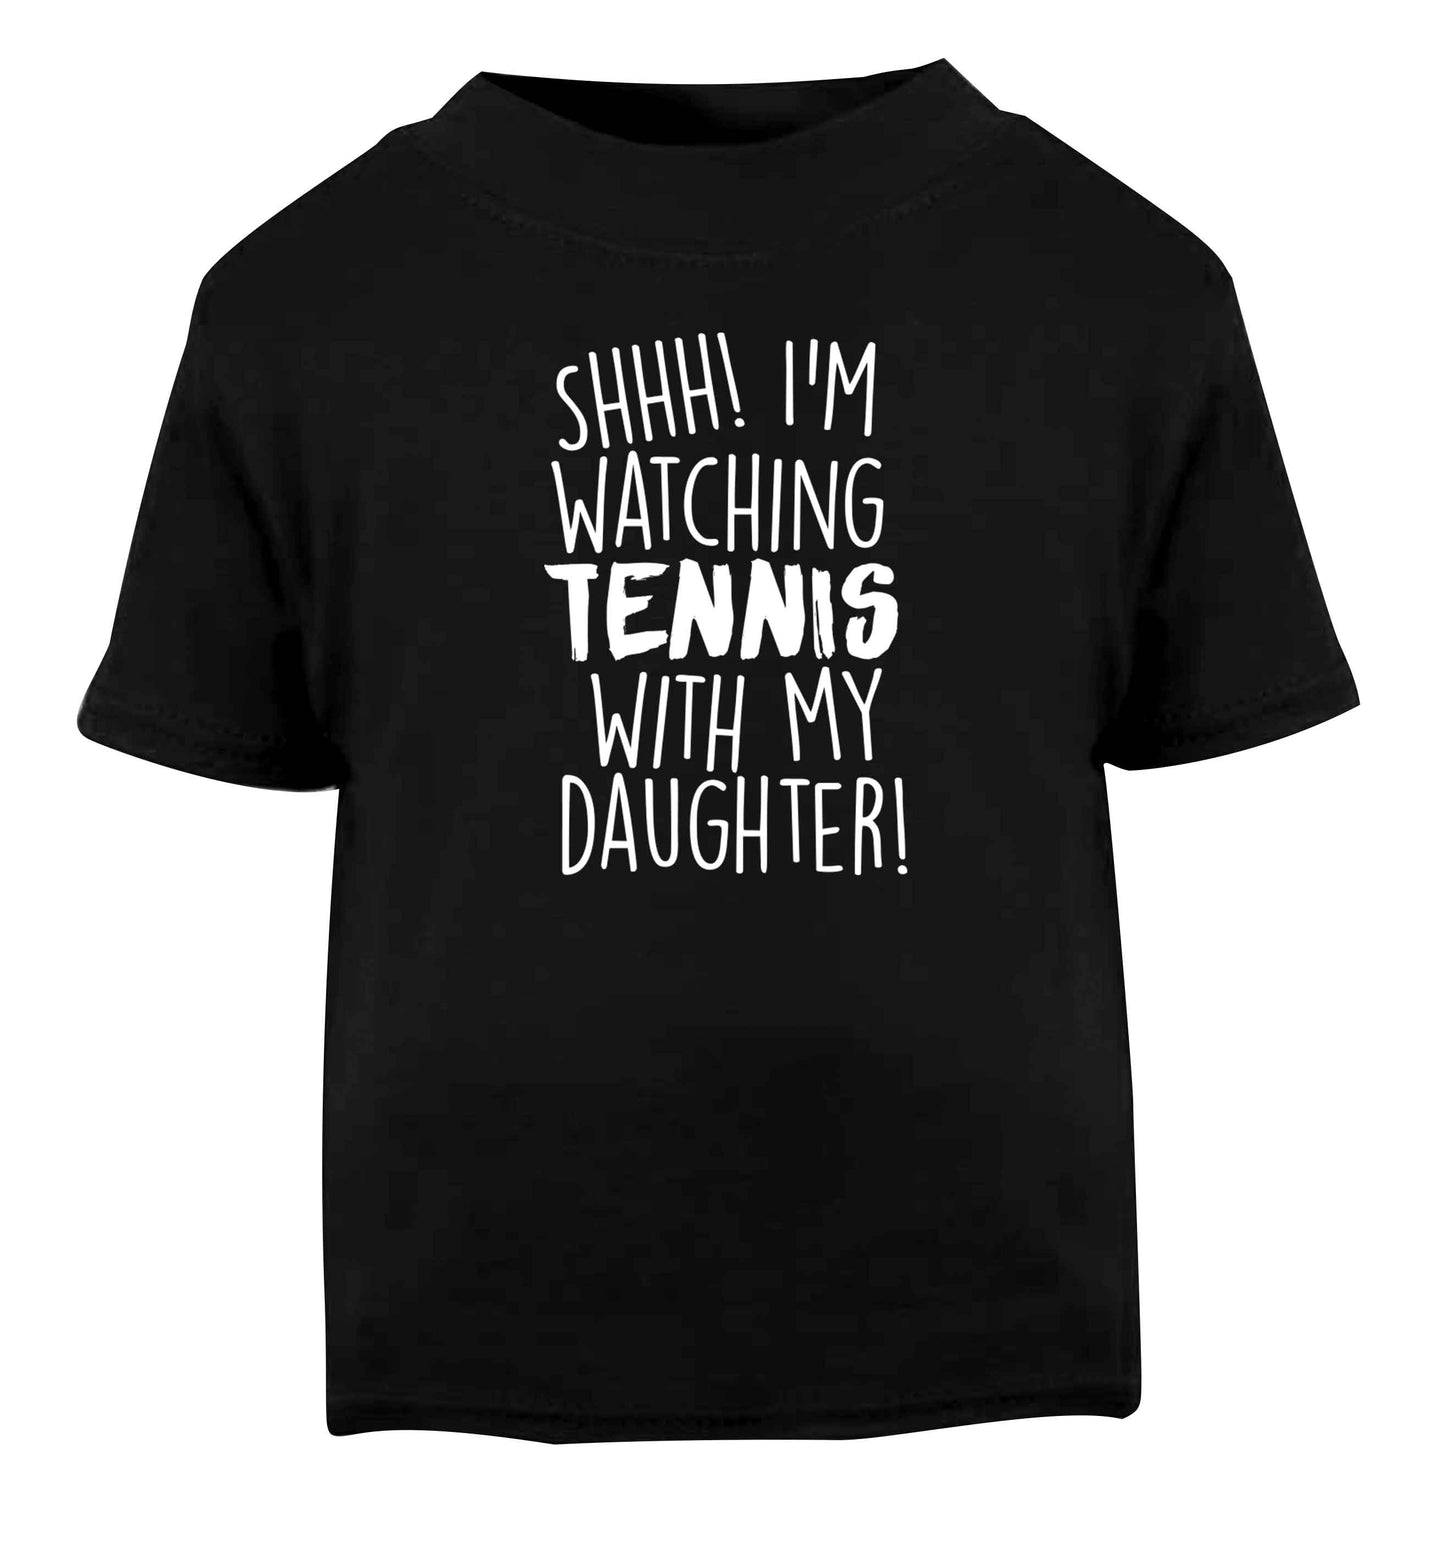 Shh! I'm watching tennis with my daughter! Black Baby Toddler Tshirt 2 years